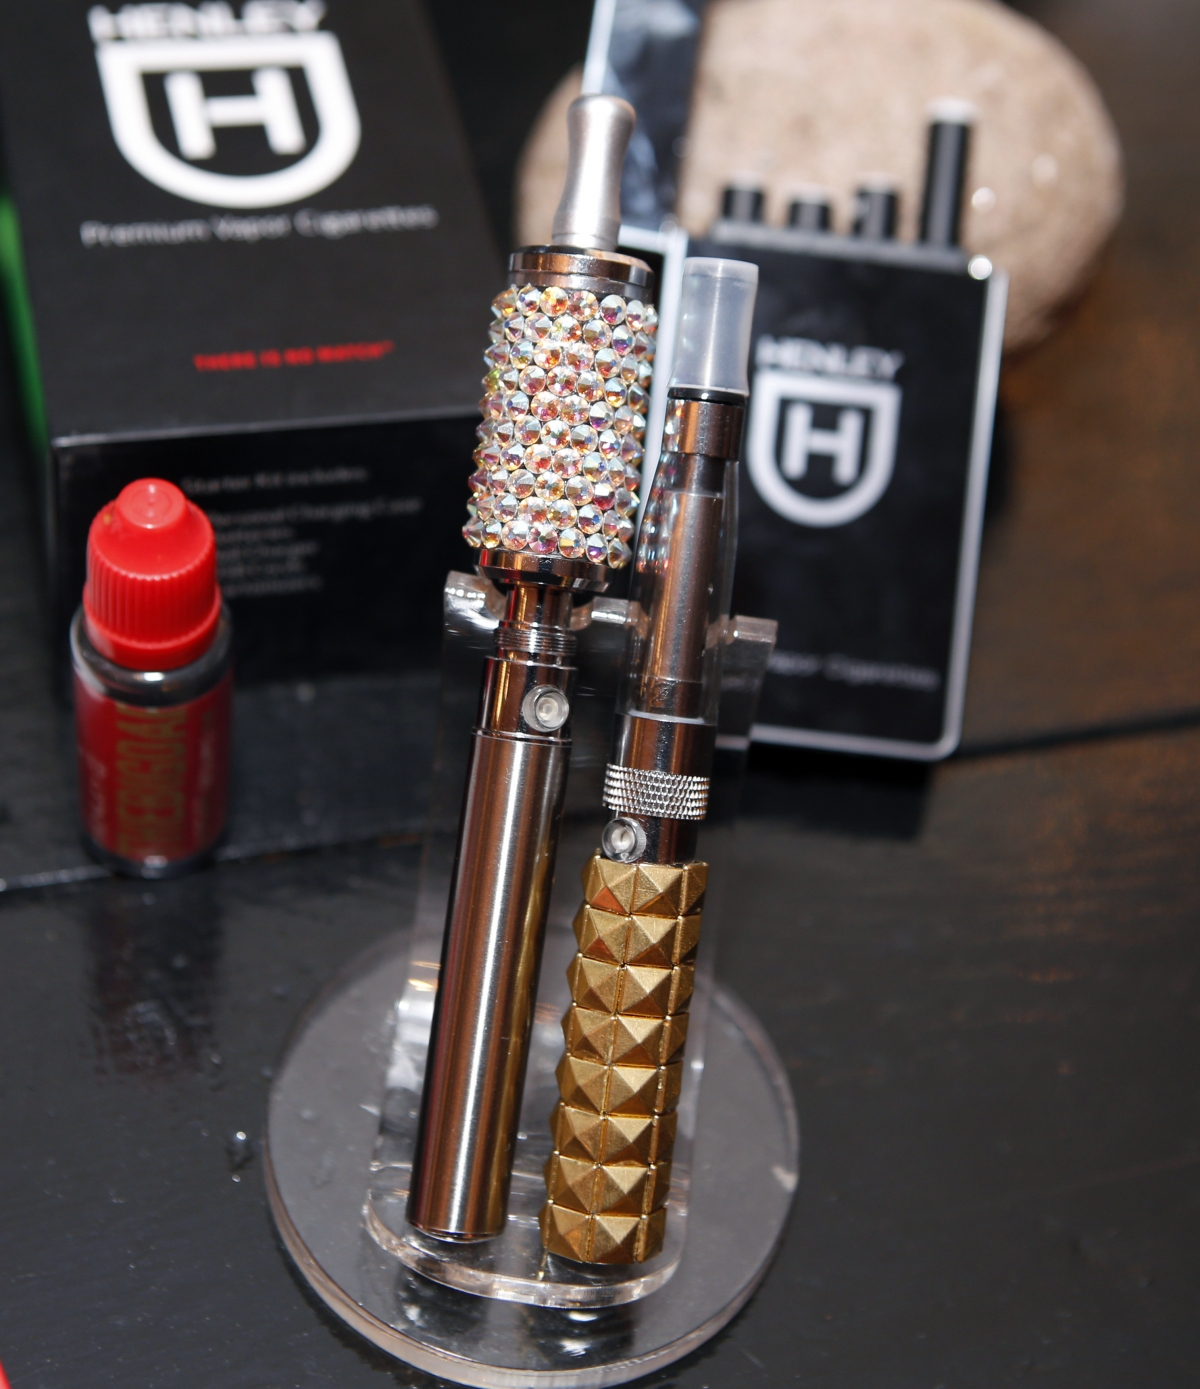 'Vaping' is growing more popular in New York with individualised vaporizers on sale